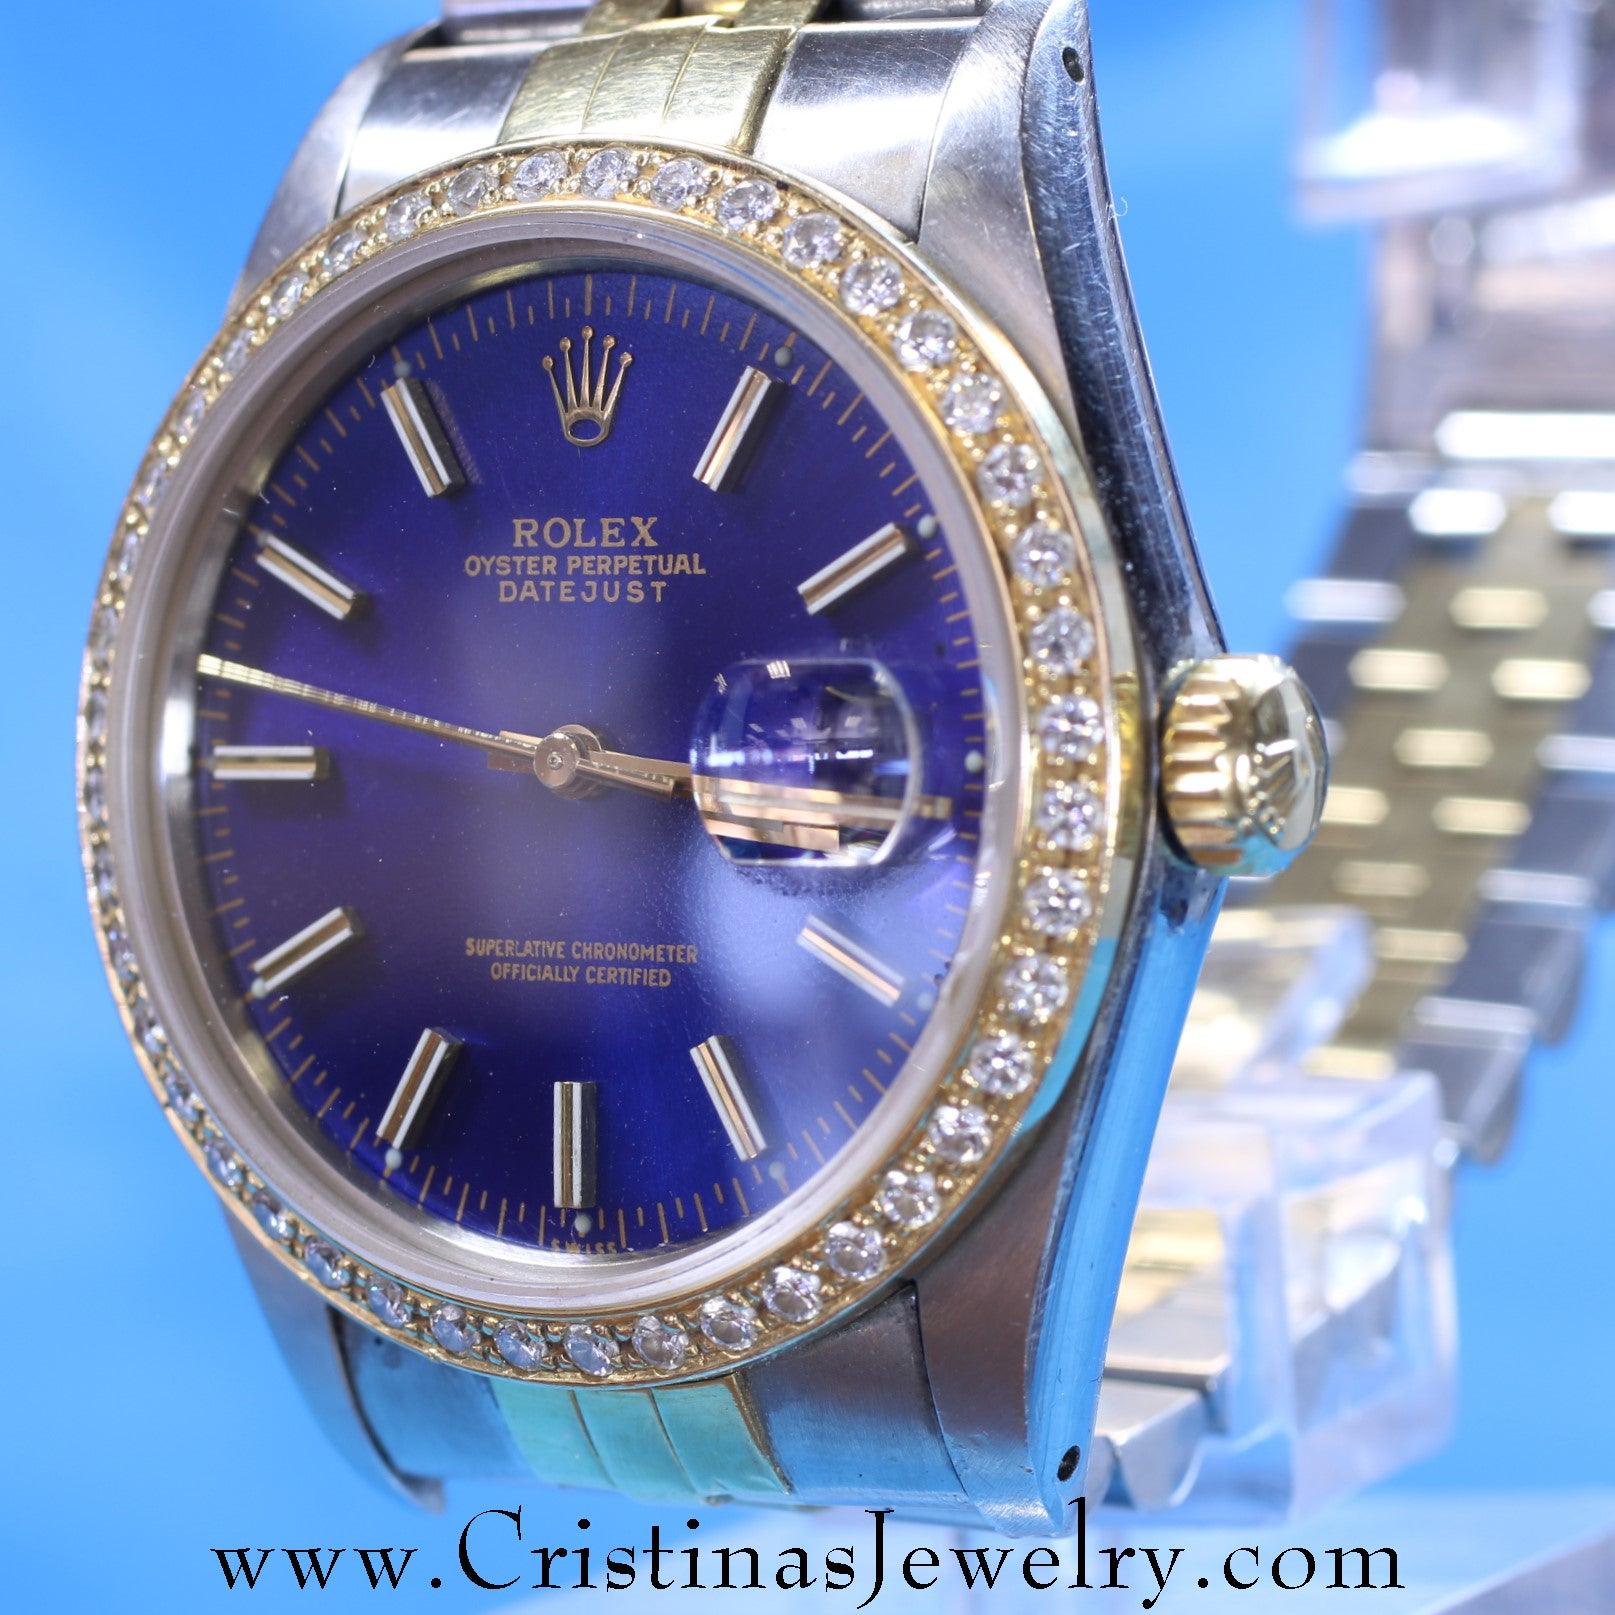 Vintage Mens Rolex Datejust Blue Face Watch with 1 Carat Diamond Bezel and Jubilee Band in Stainless & 18 Karat Yellow Gold